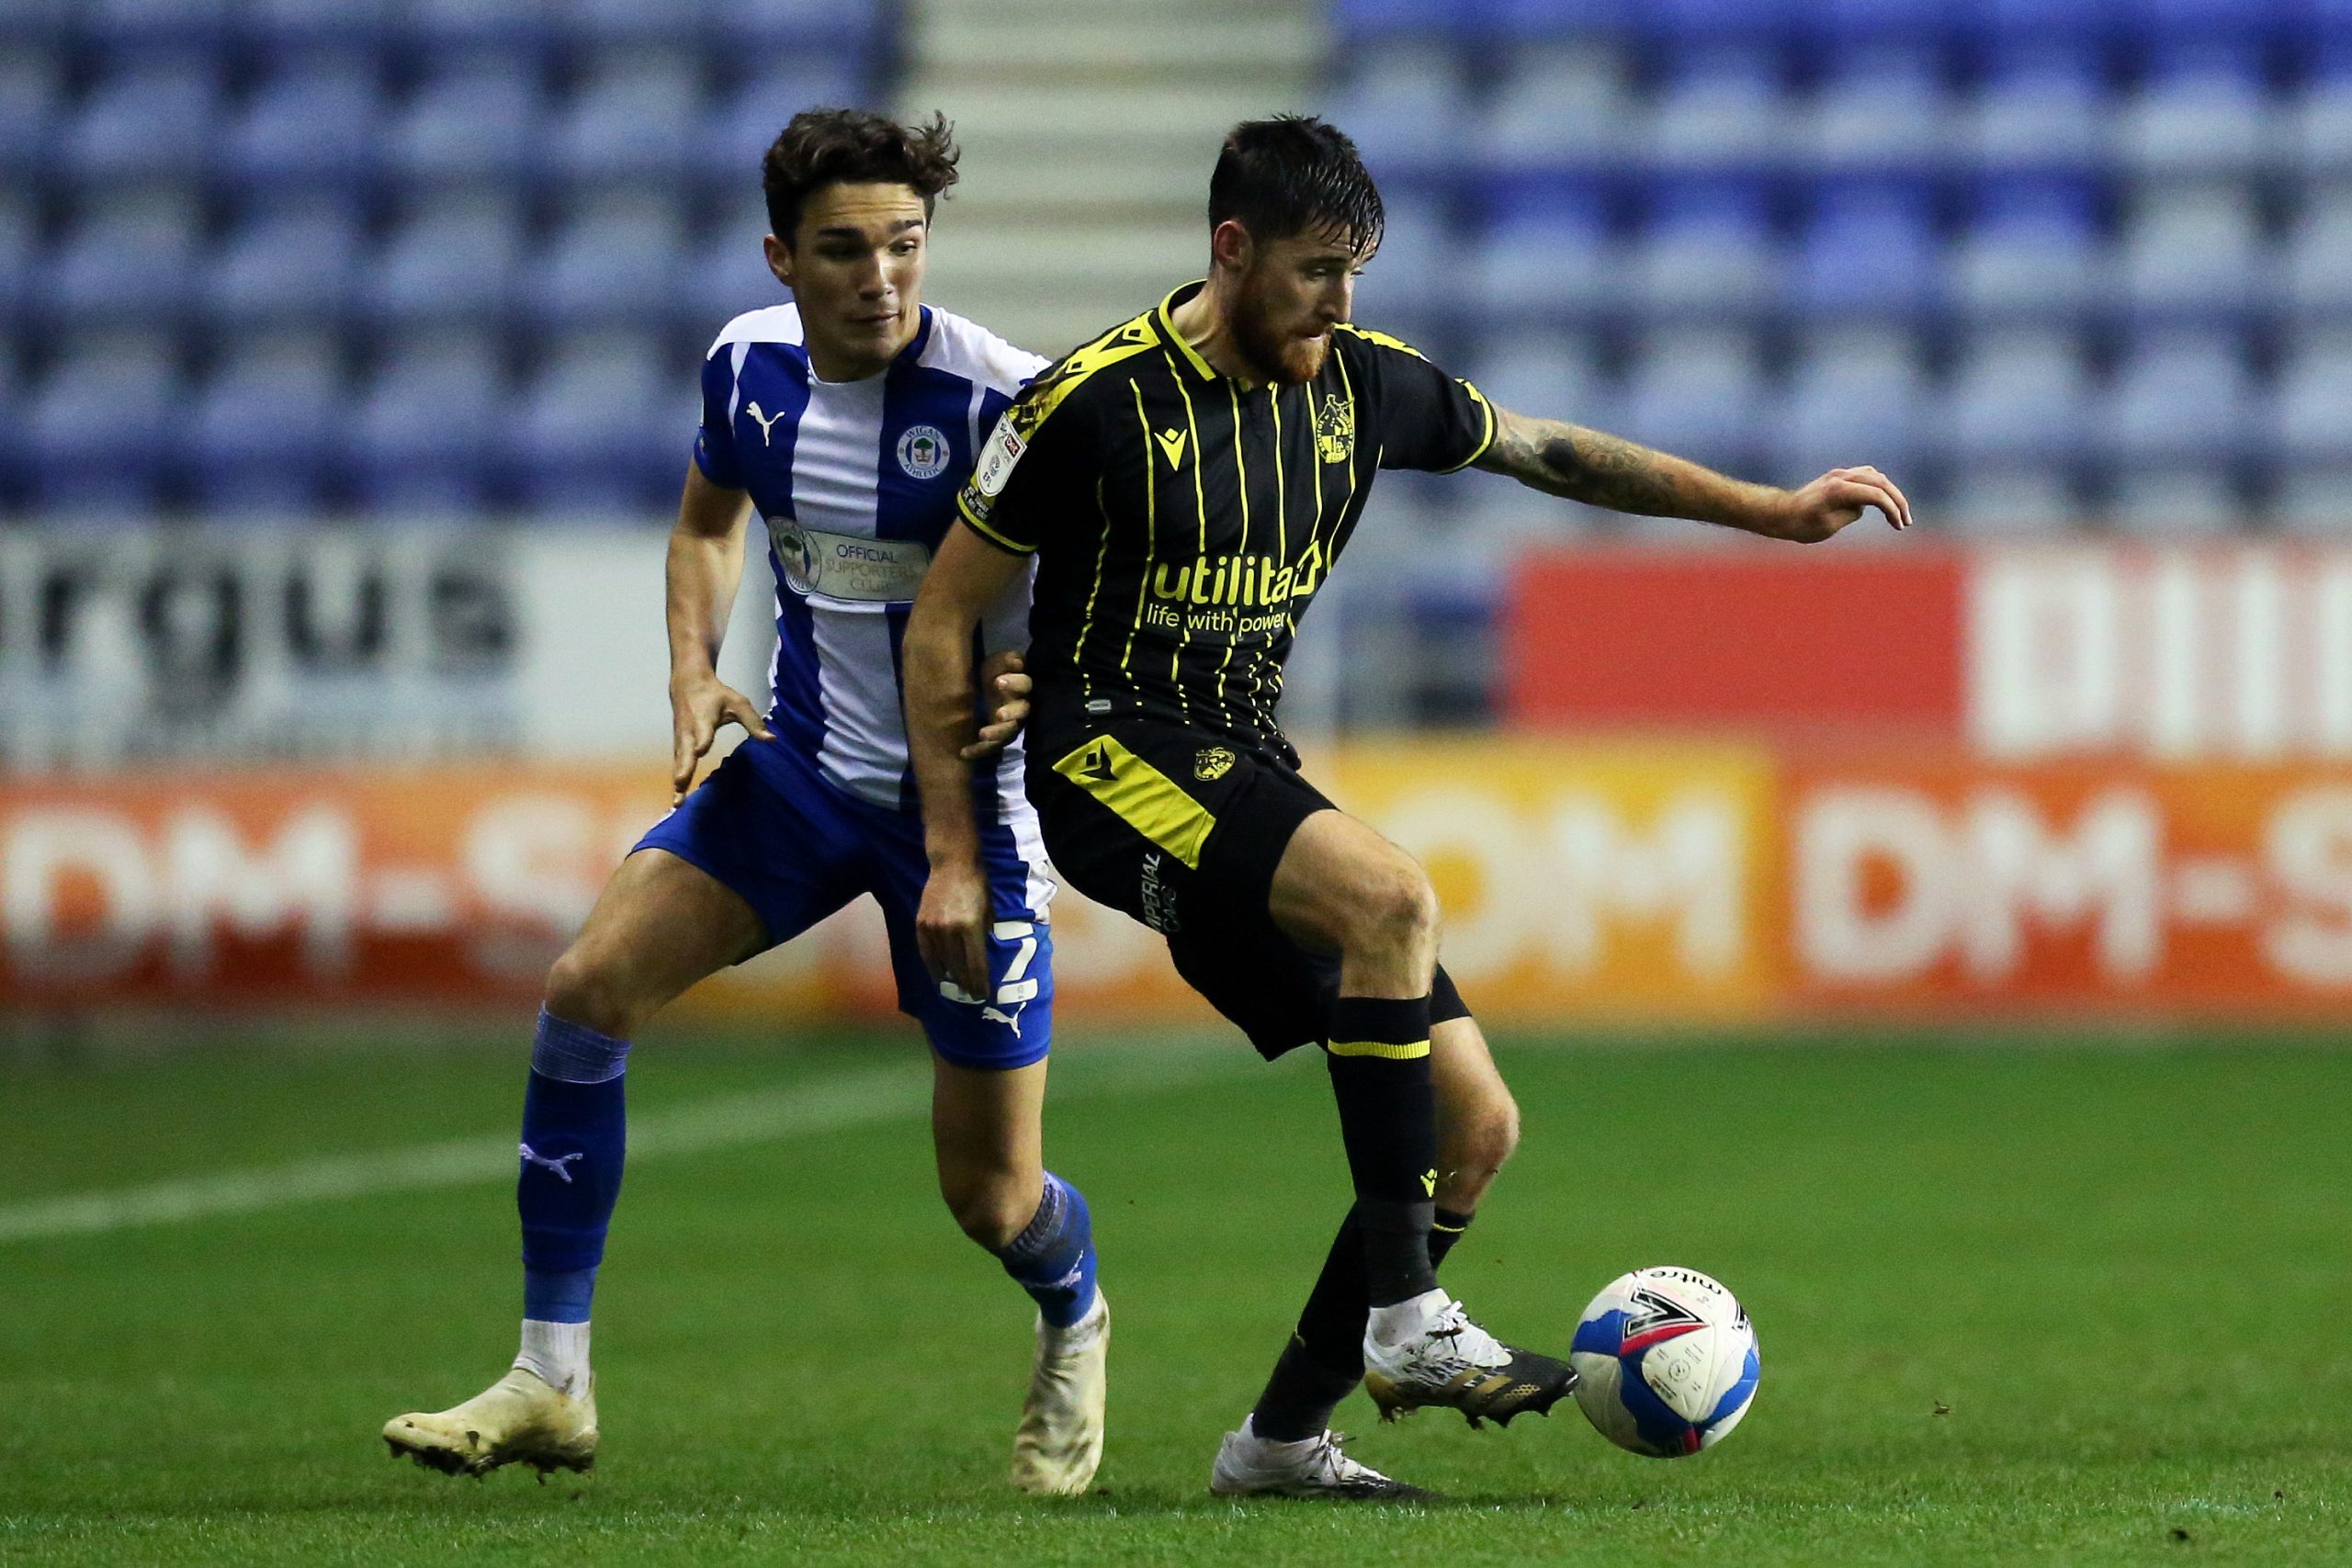 Kyle Joseph (L) plays for Wigan Athletic in League One. (imago Images)